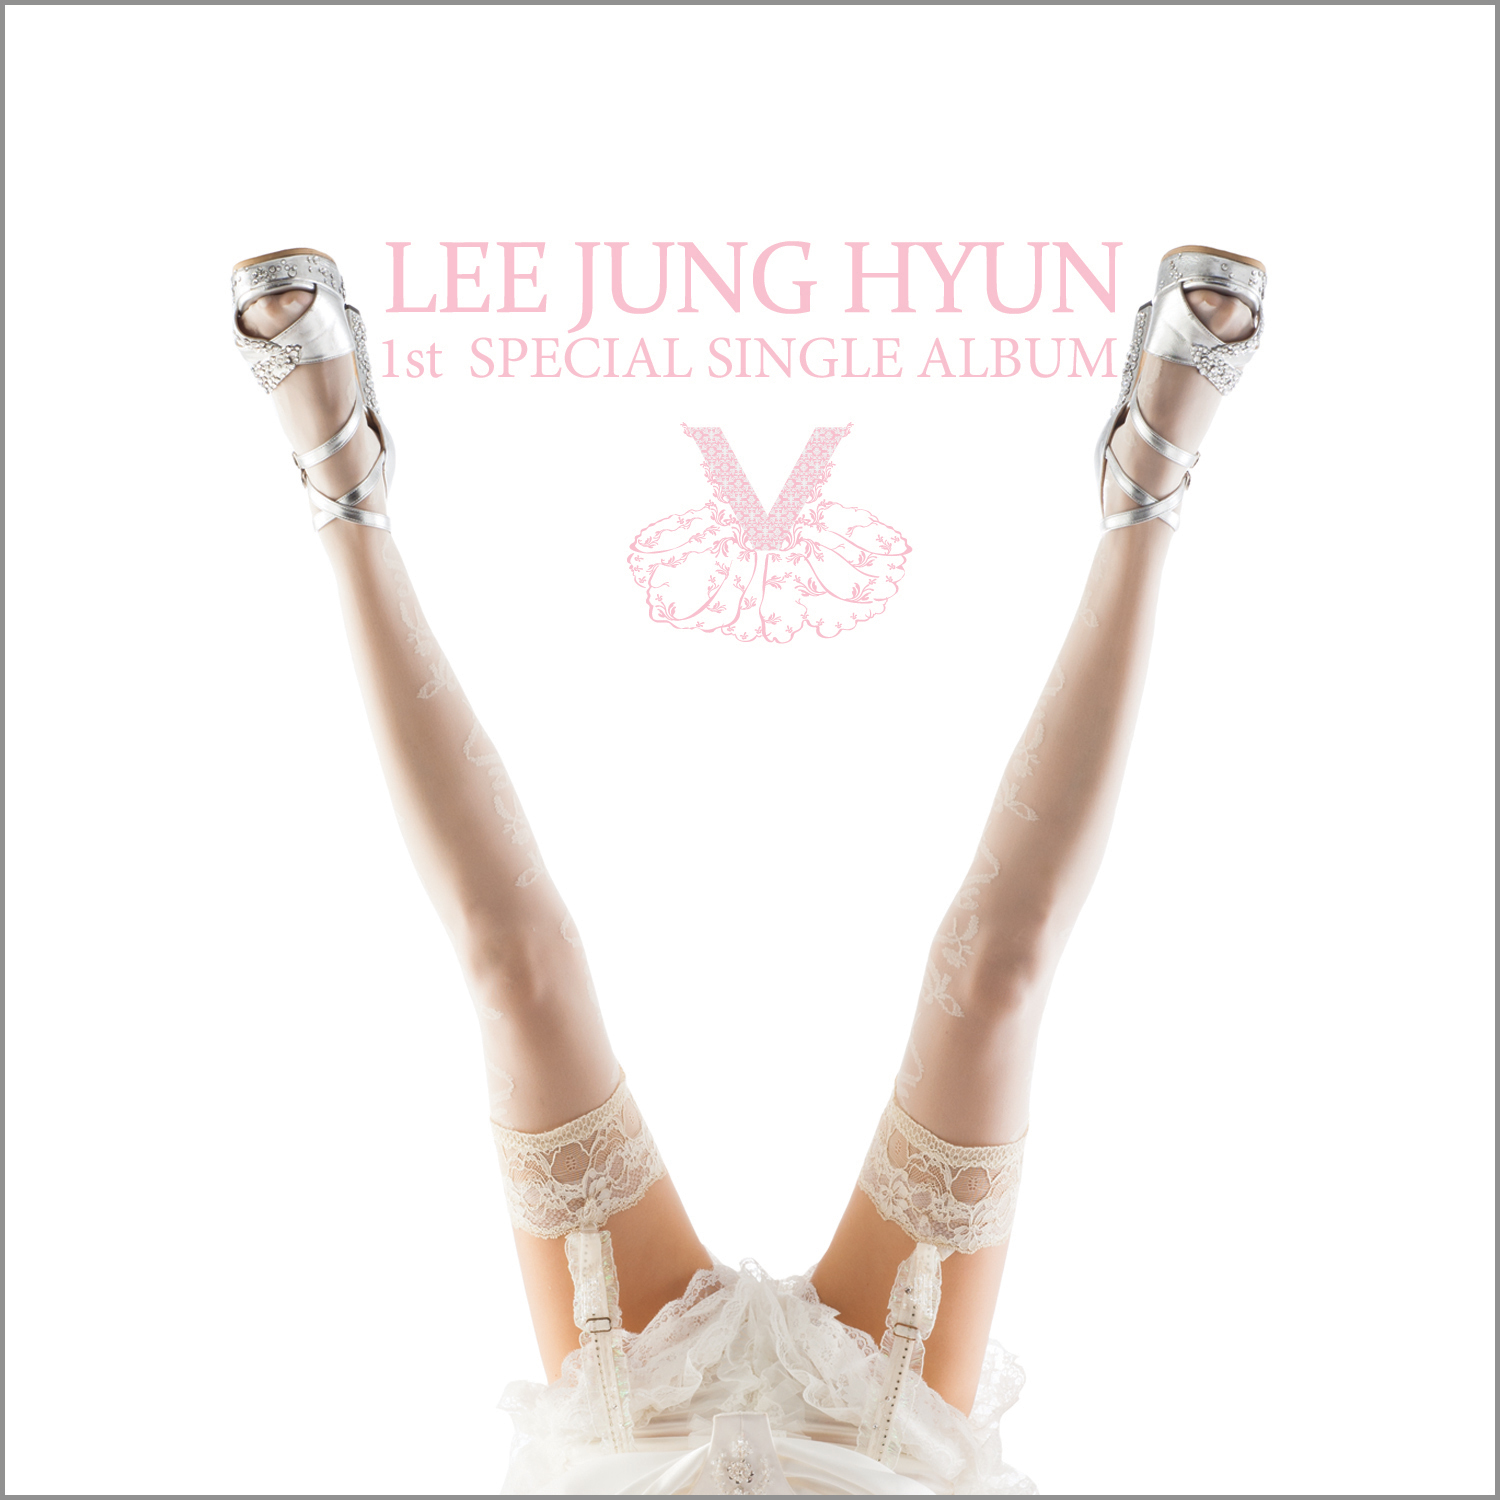 20181210.0000.21 Lee Jung Hyun - V (FLAC) cover.jpg